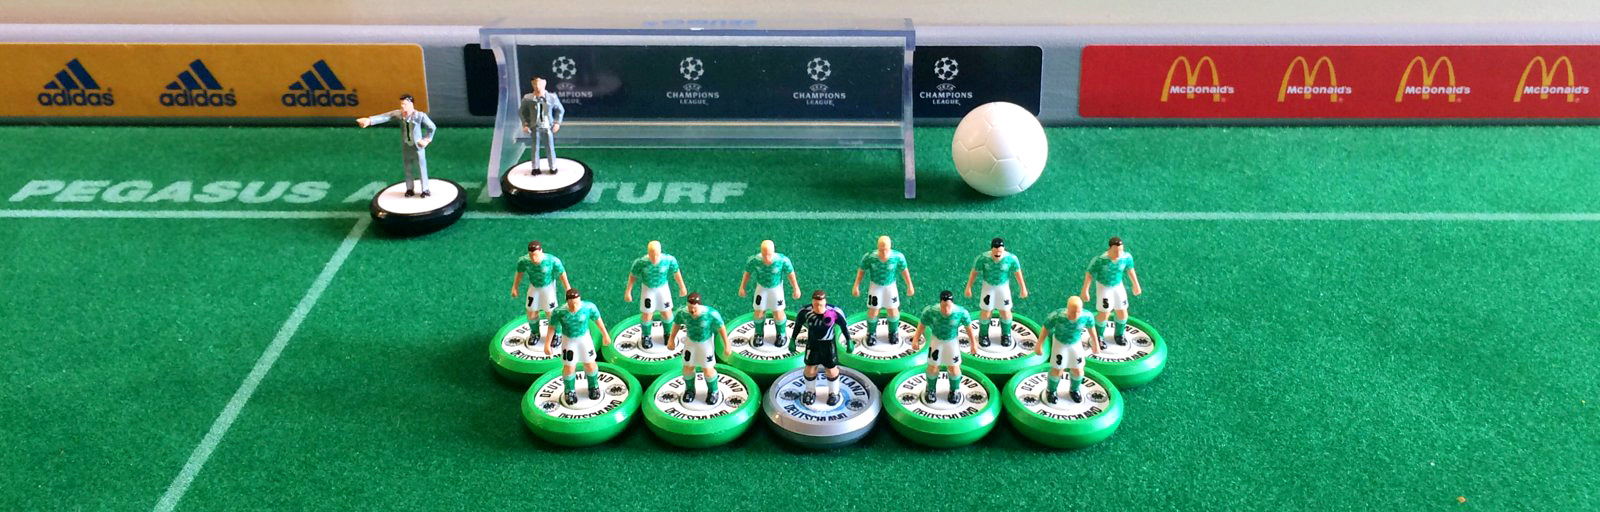 Subbuteo table soccer l ndchenlust - Who invented table football ...